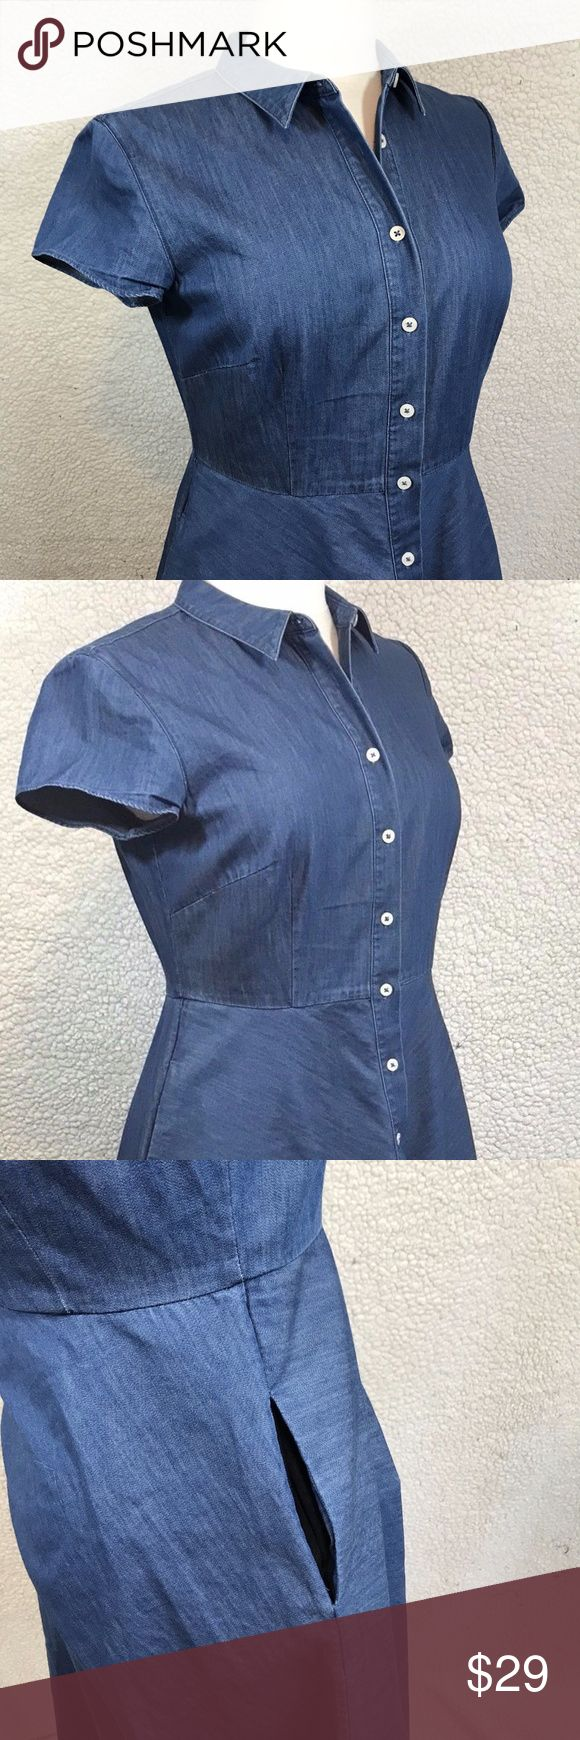 """Boden Women's Denim Shirt Dress Size US 6L Boden Women's Denim Shirt Dress Size US 6L UK 10L Button Front Short Sleeve. Pockets. No Rips, Stains or holes. Smoke Free Home.   Fabric: 100% Cotton Approximate measurements:  Length: 41"""" inches  Chest (laying Flat underarm to underarm) : 17.5"""" inches Boden Dresses Asymmetrical"""